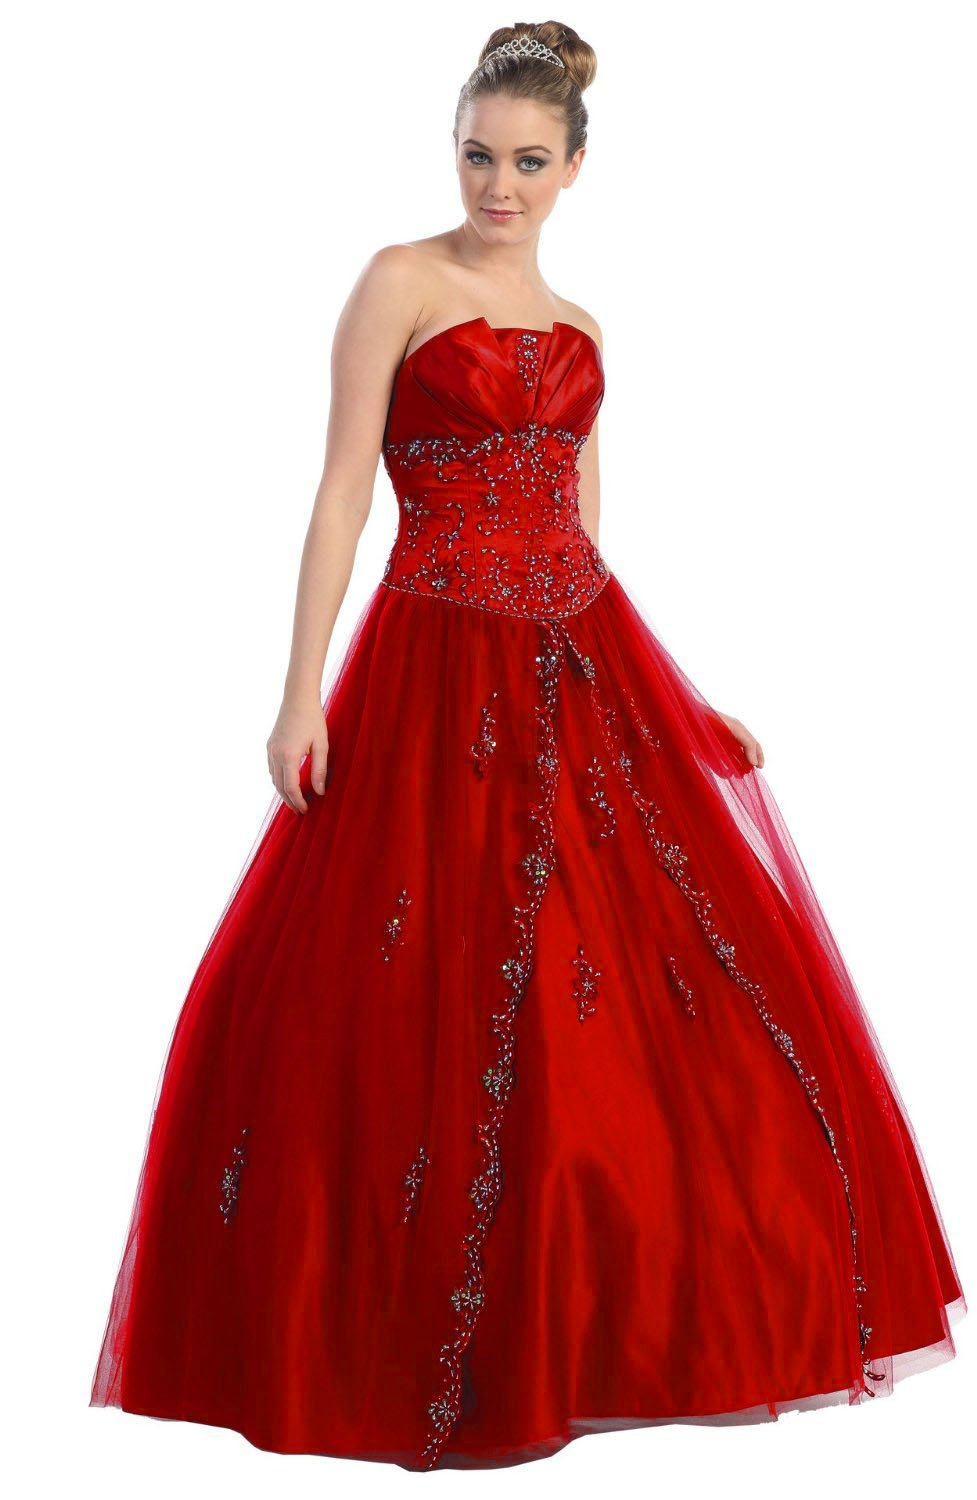 Non traditional wedding dresses for Dresses for reception weddings